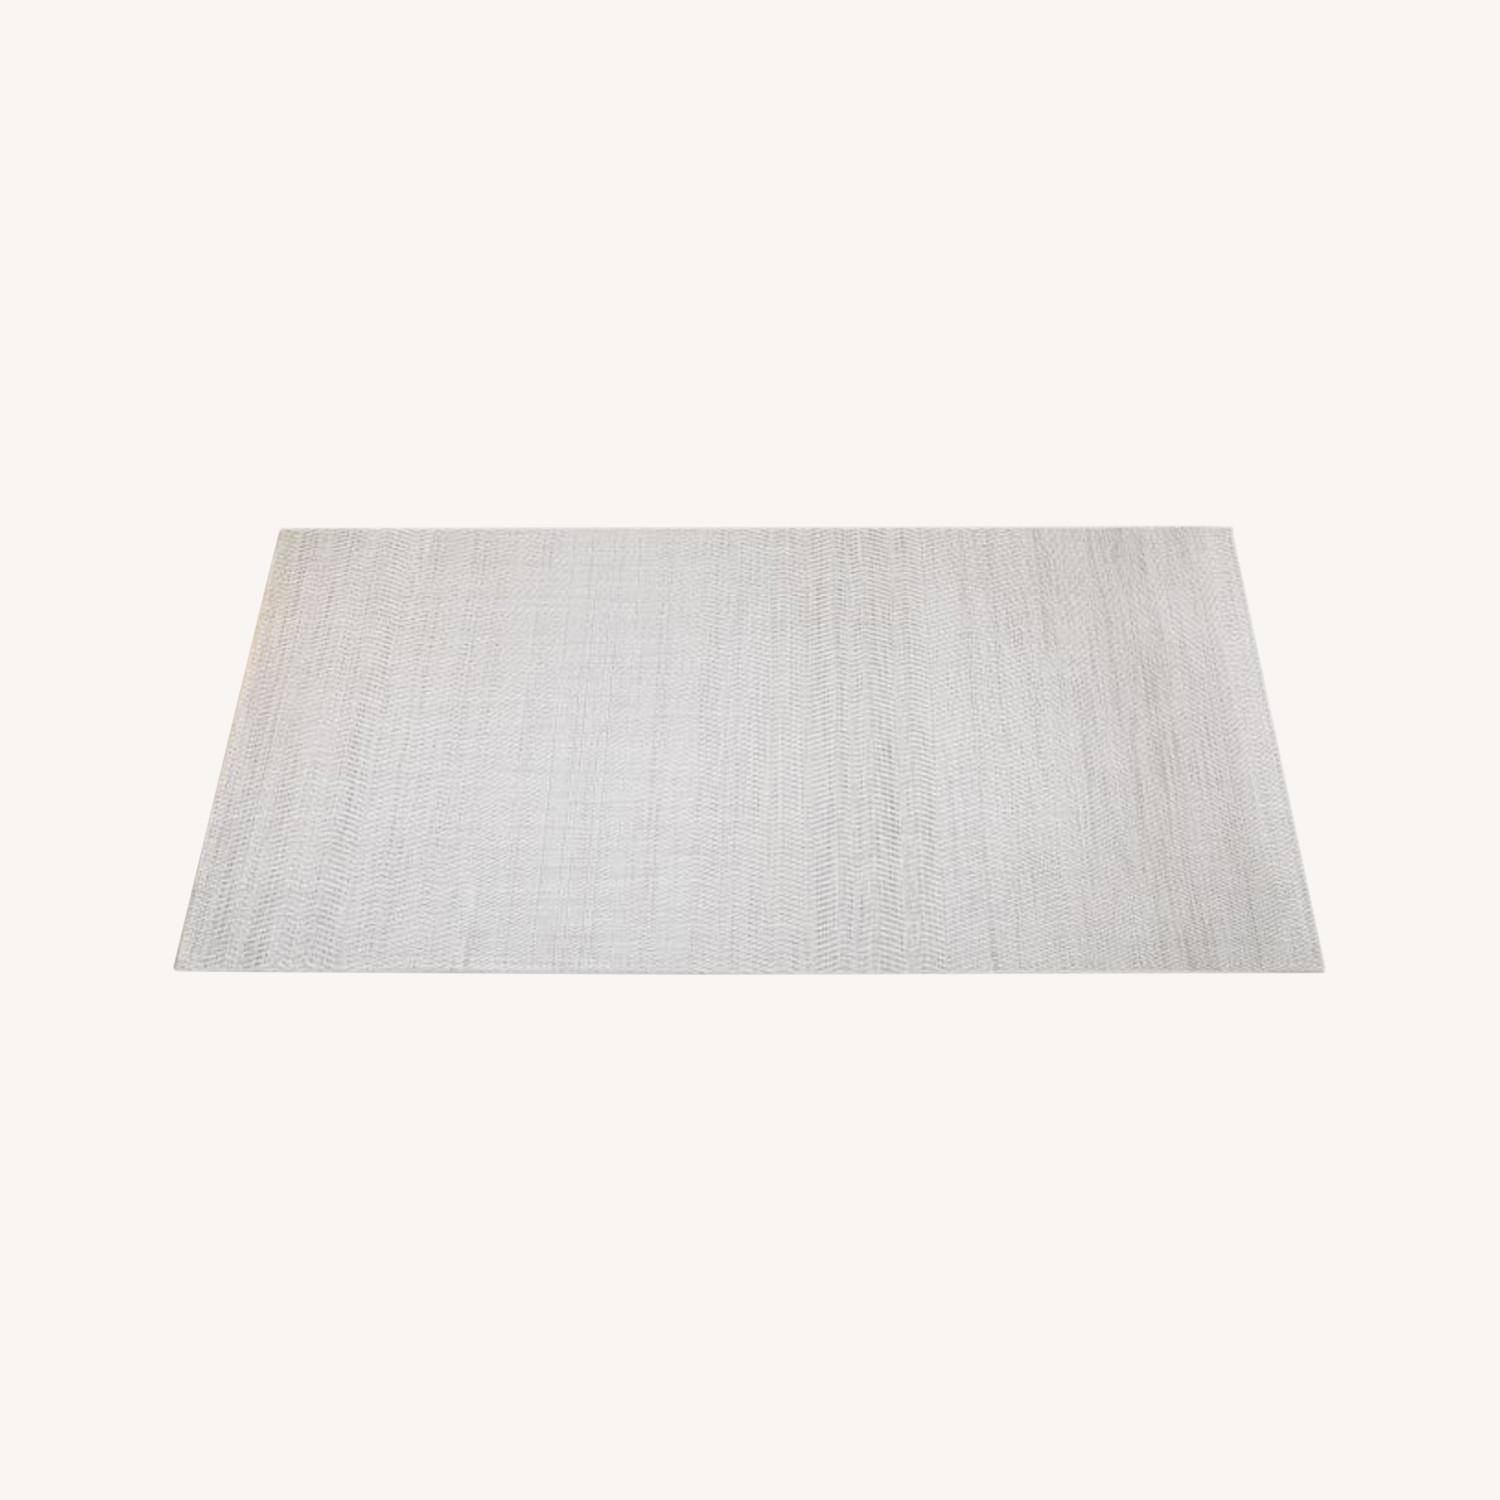 West Elm Chilewich Wave Woven Floormat - image-0